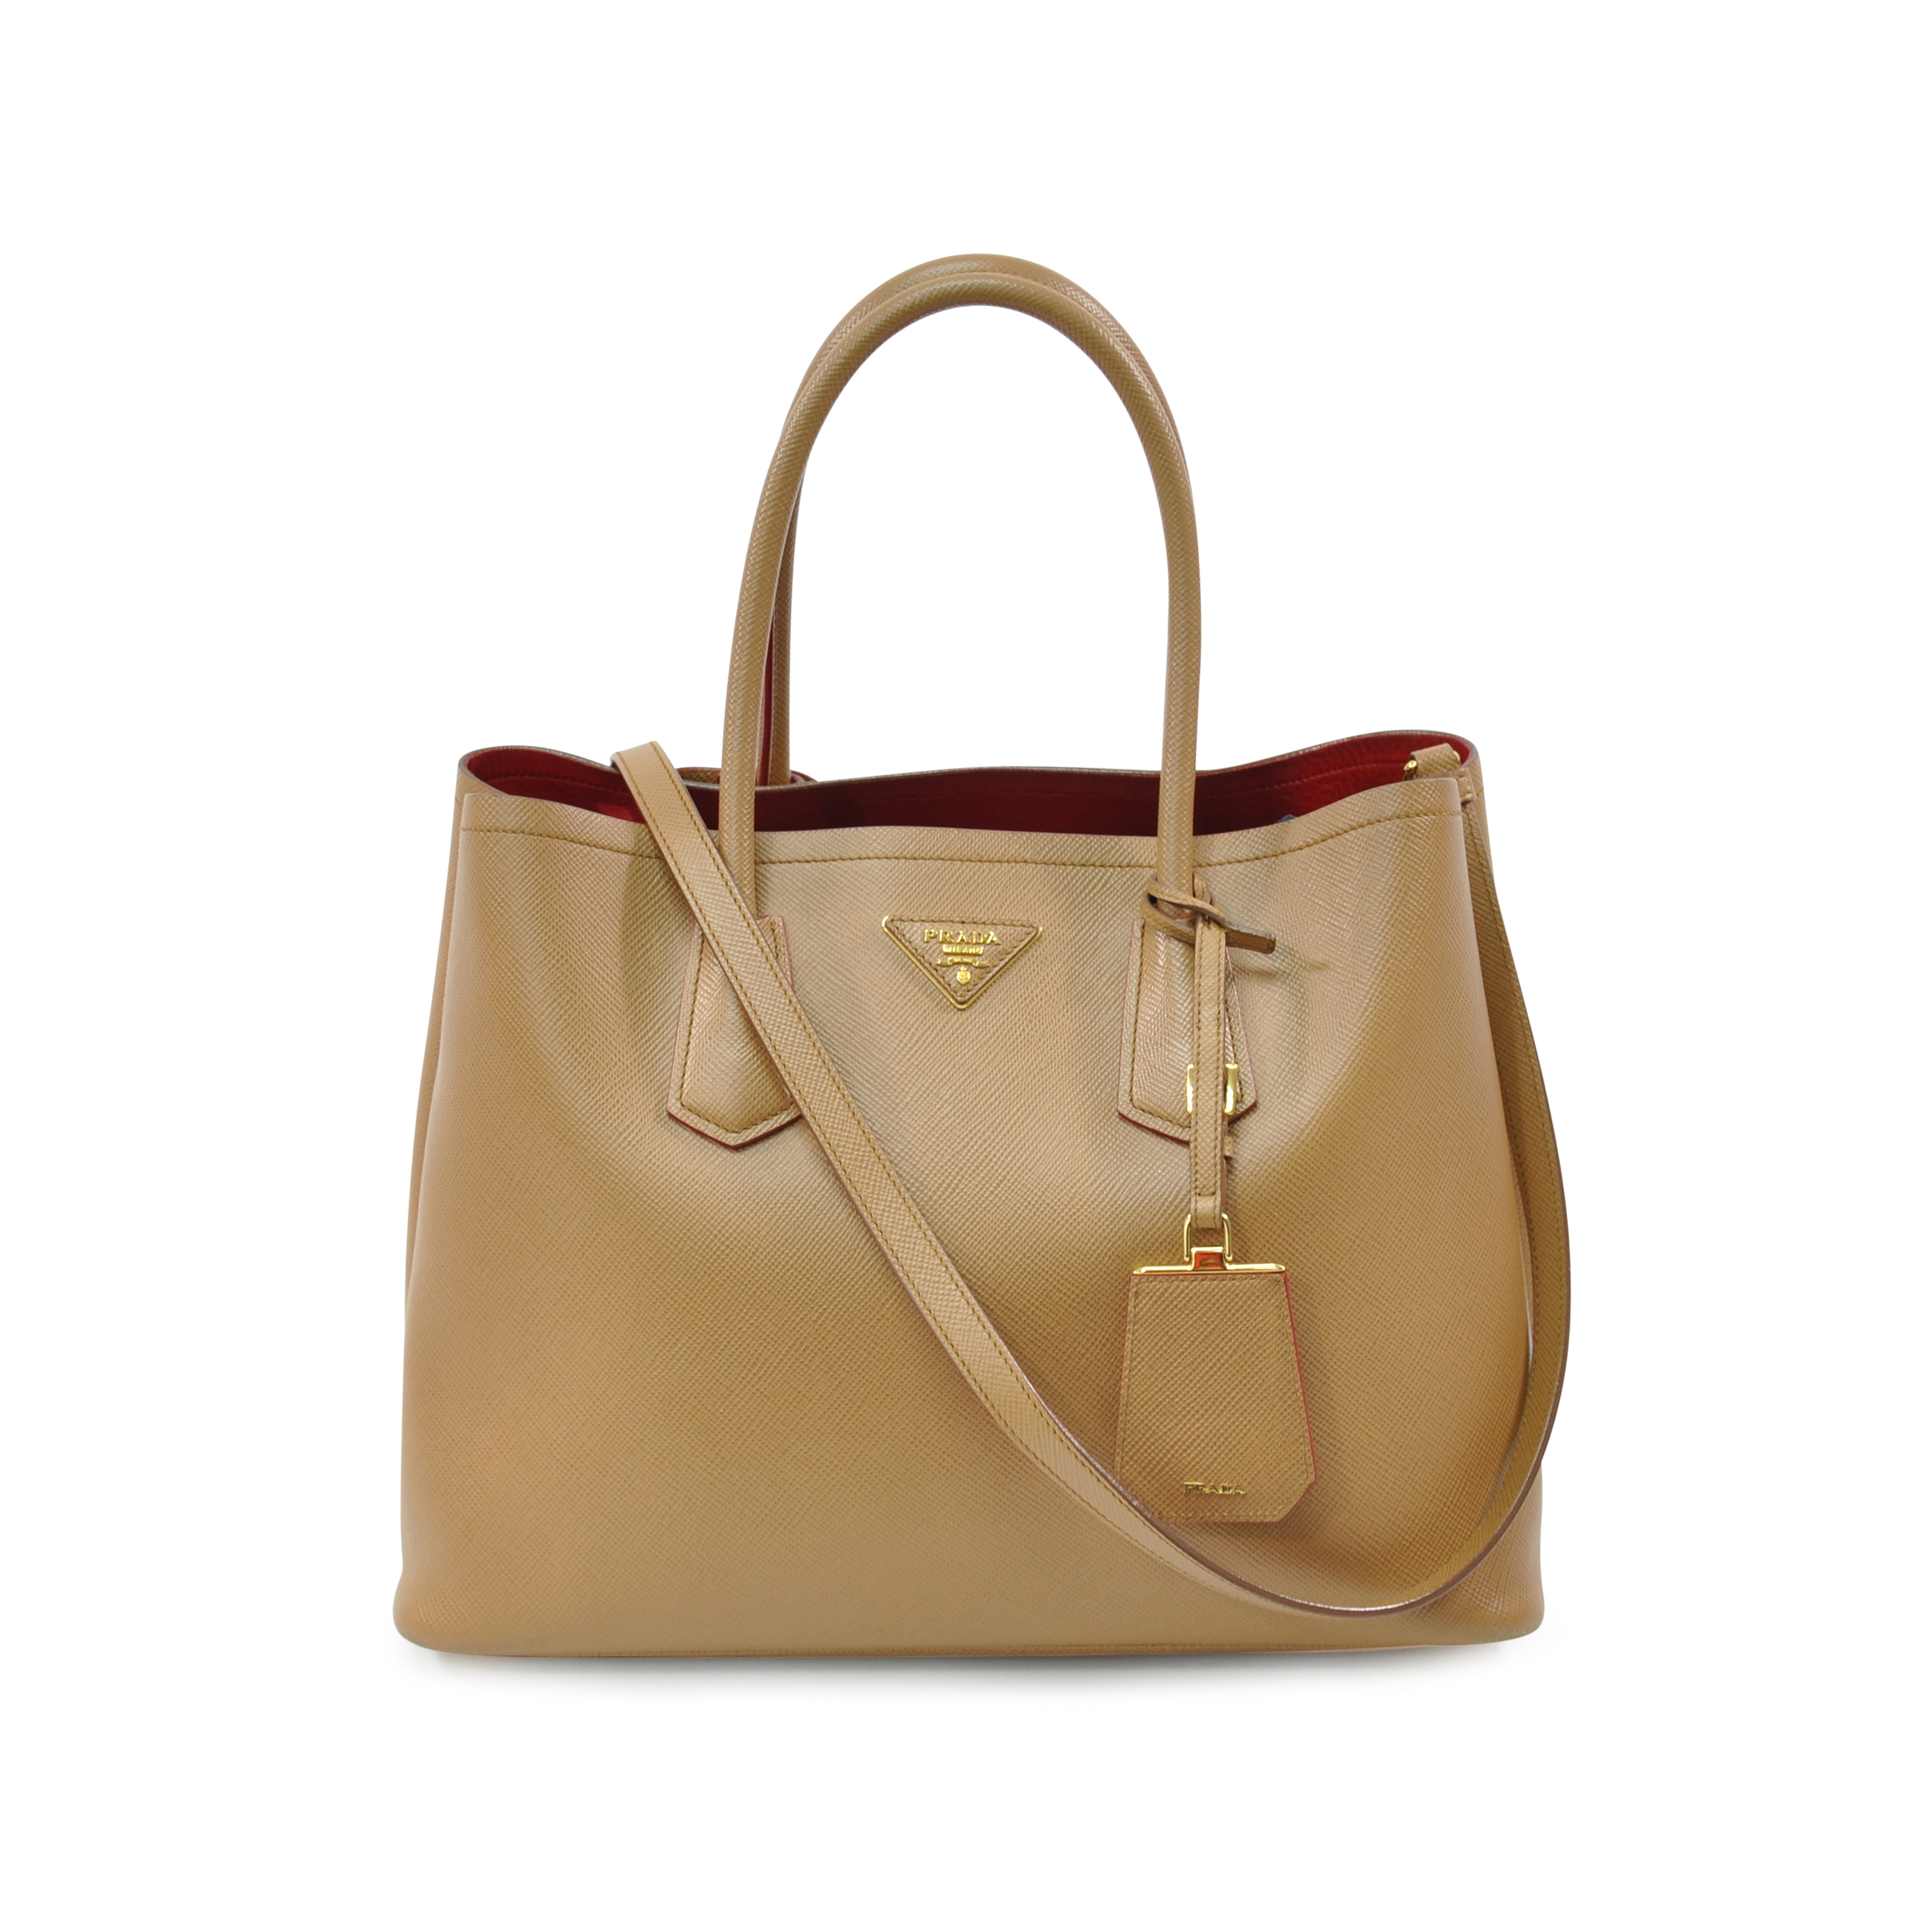 9cafd4a5a1db41 Authentic Second Hand Prada Cuir Double Tote Bag (PSS-328-00004) | THE  FIFTH COLLECTION